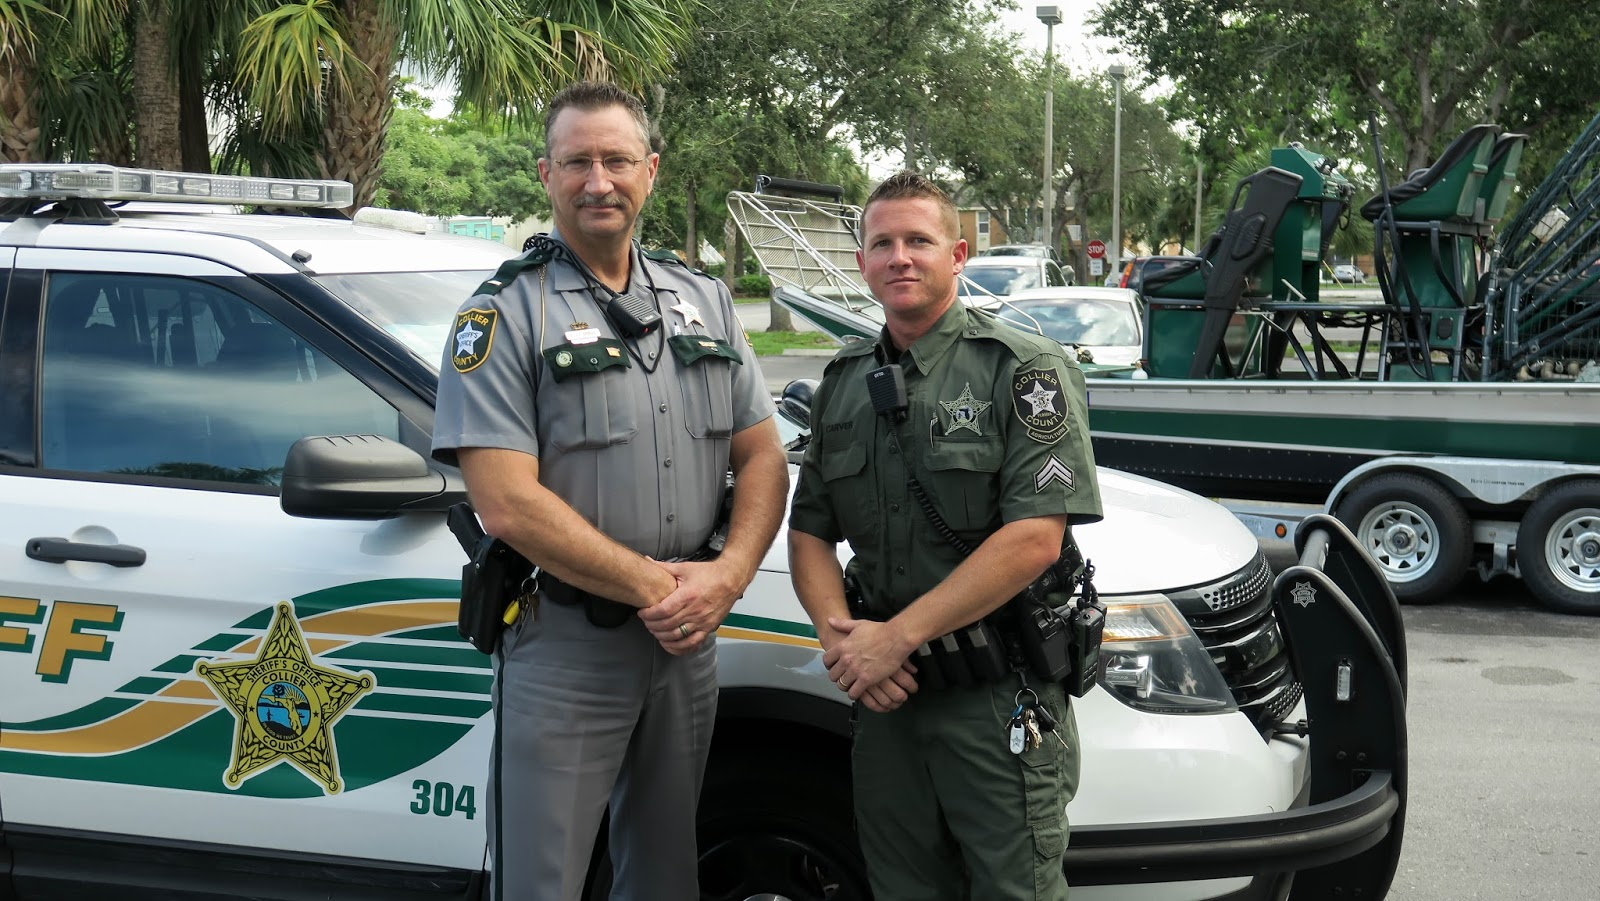 Collier county sheriff s office picture and images for Motor vehicle naples fl